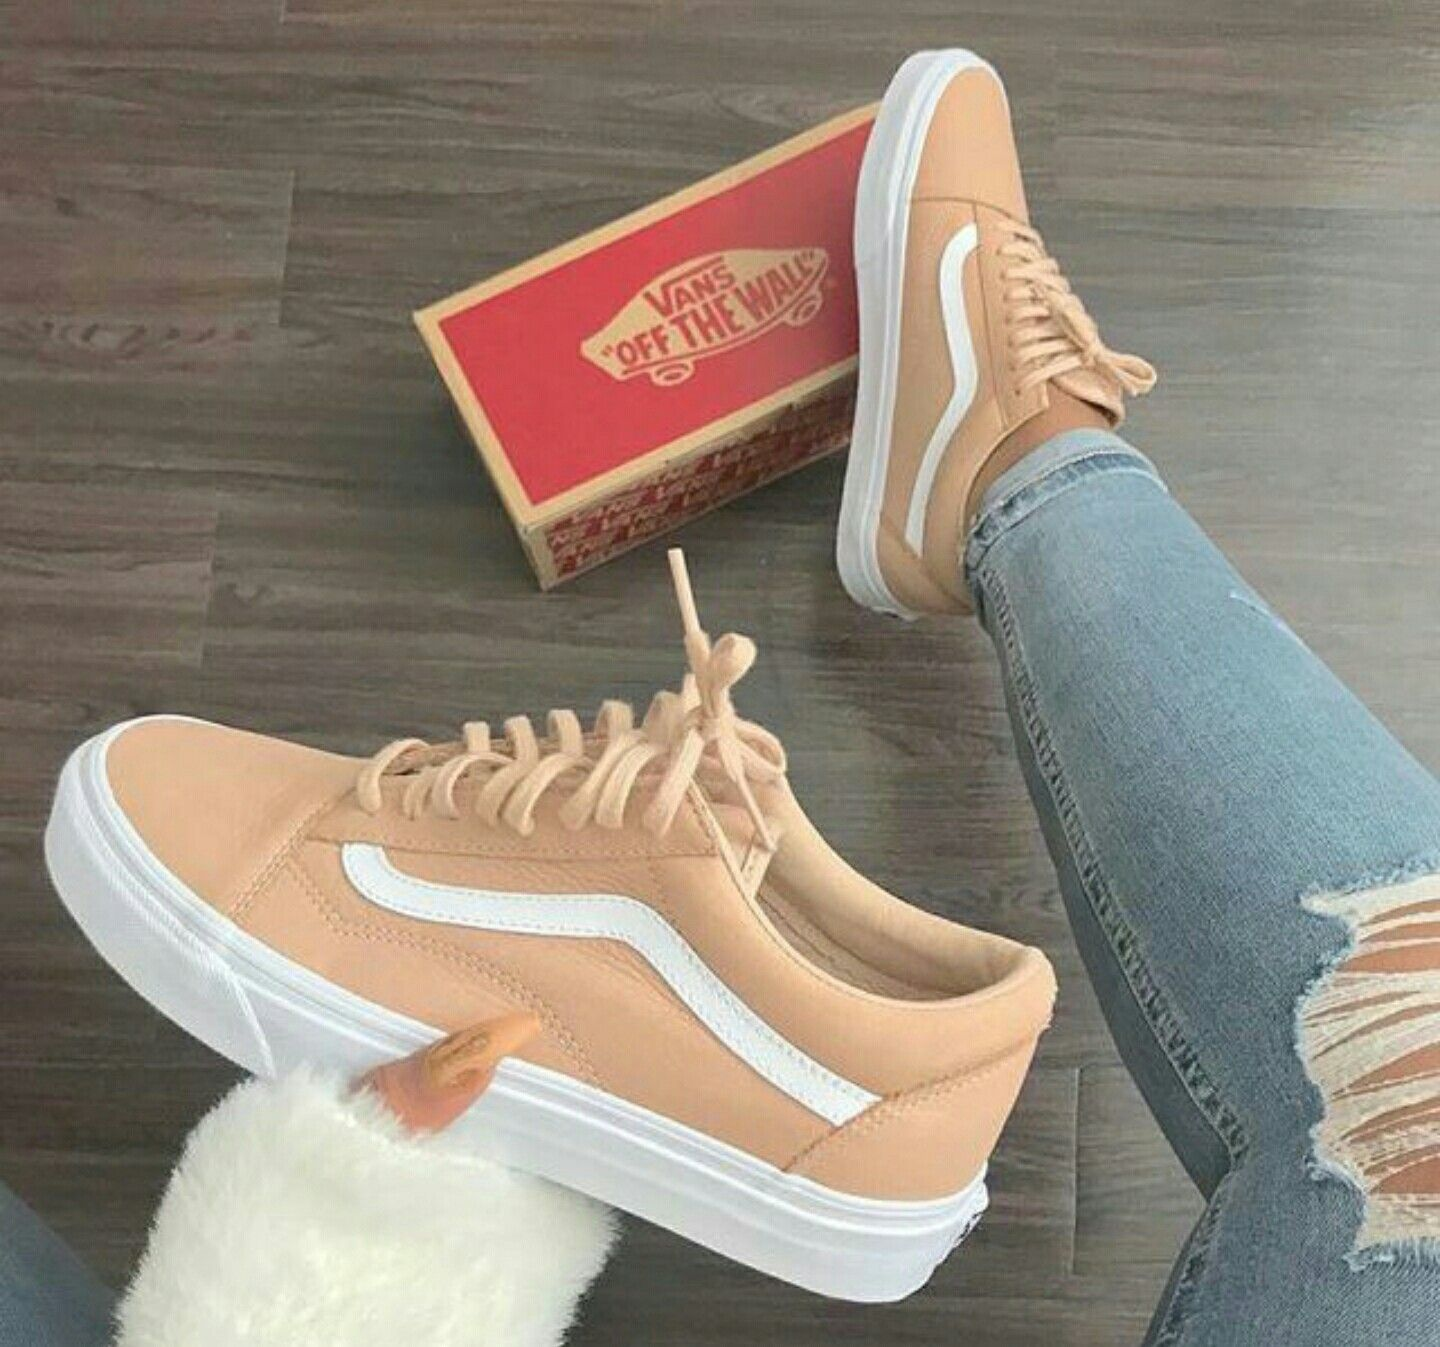 Astra (3 colors) | Sneakers, Skate shoes, Shoes